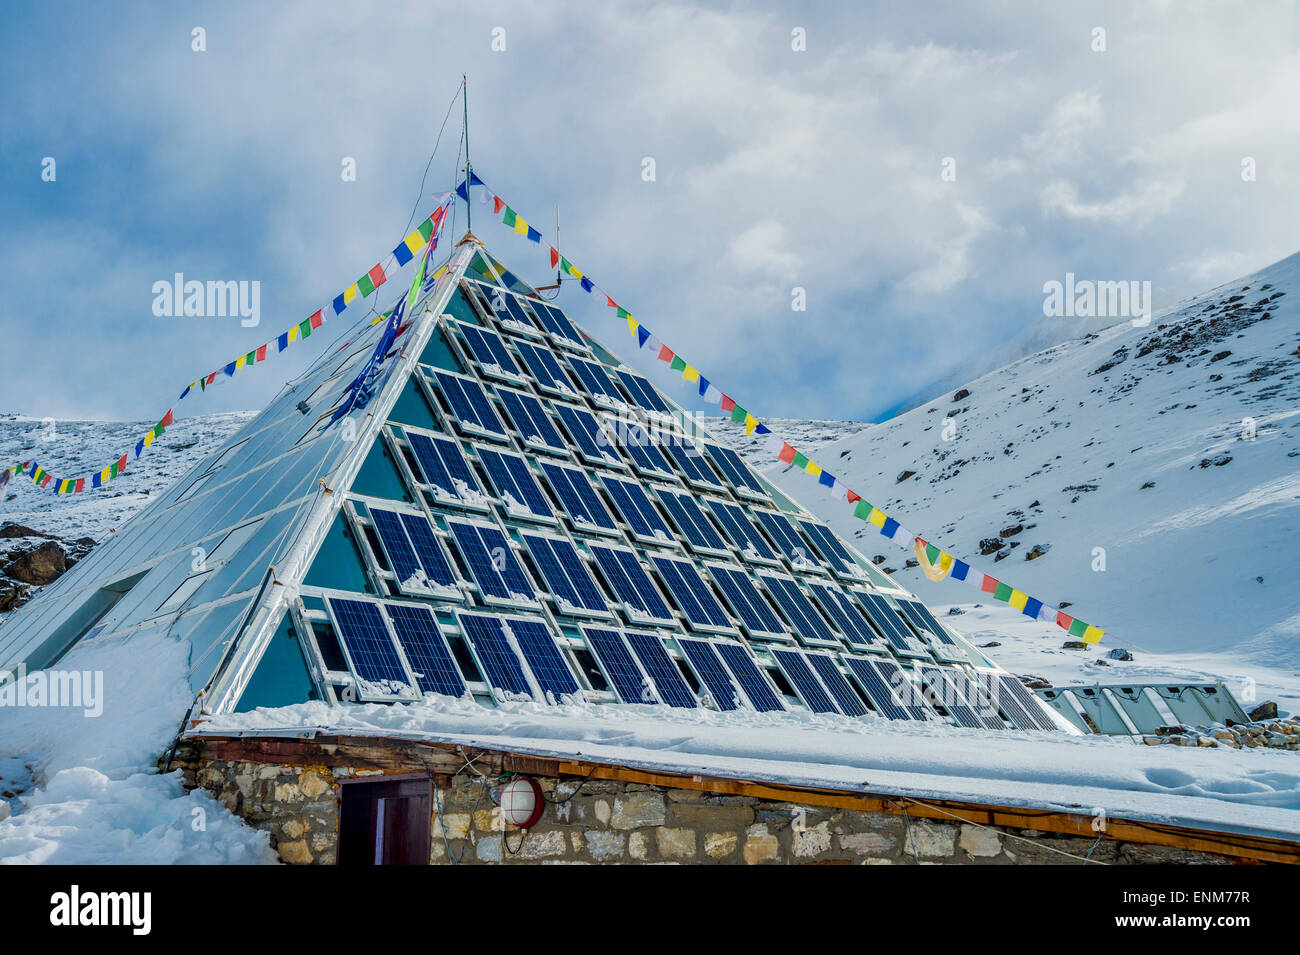 High-altitude scientific research center in the Himalays, Aka the Italian Pyramid. - Stock Image